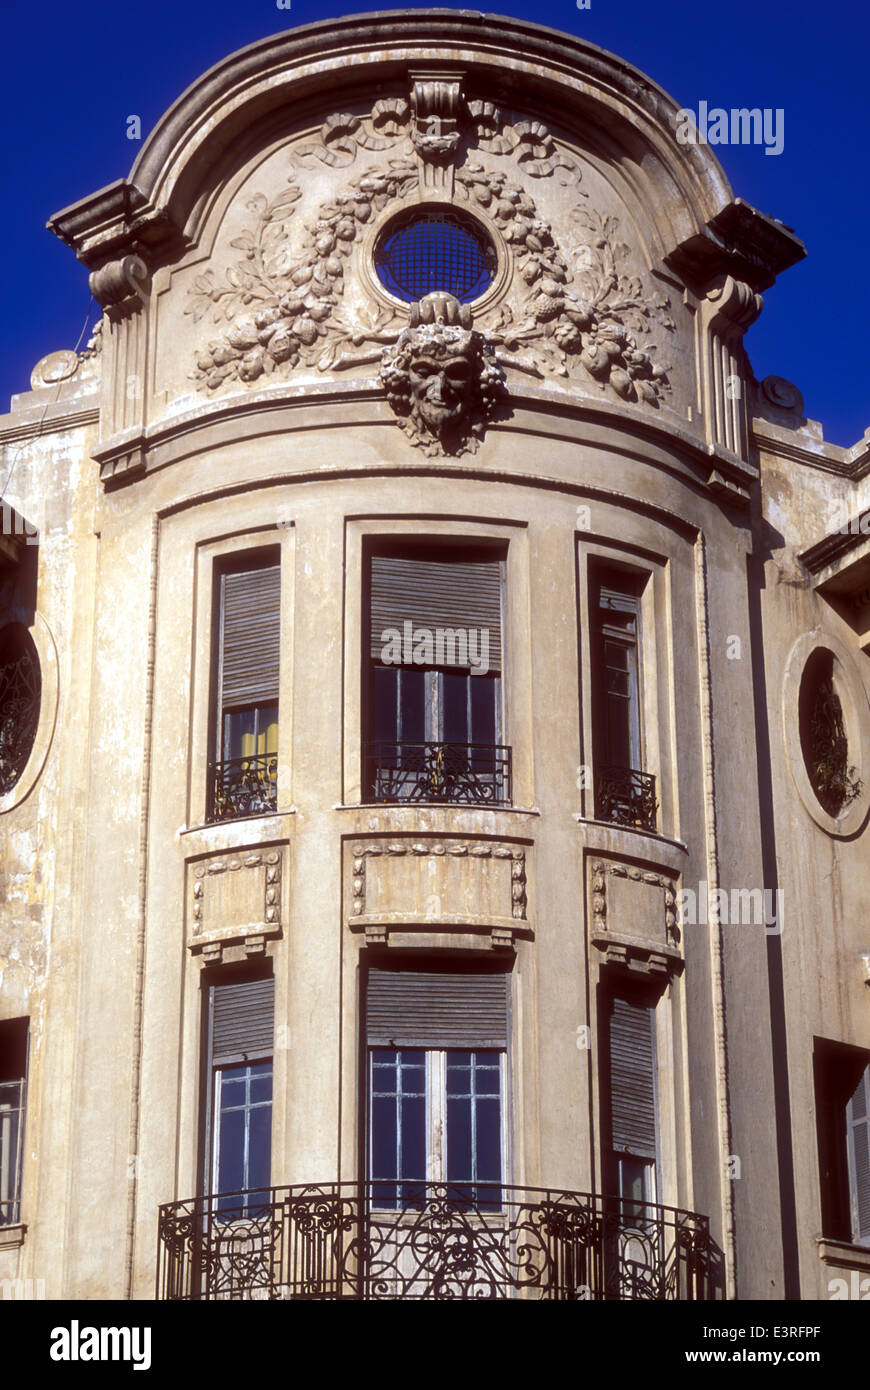 Art-deco facade of a building in Casablanca Morocco